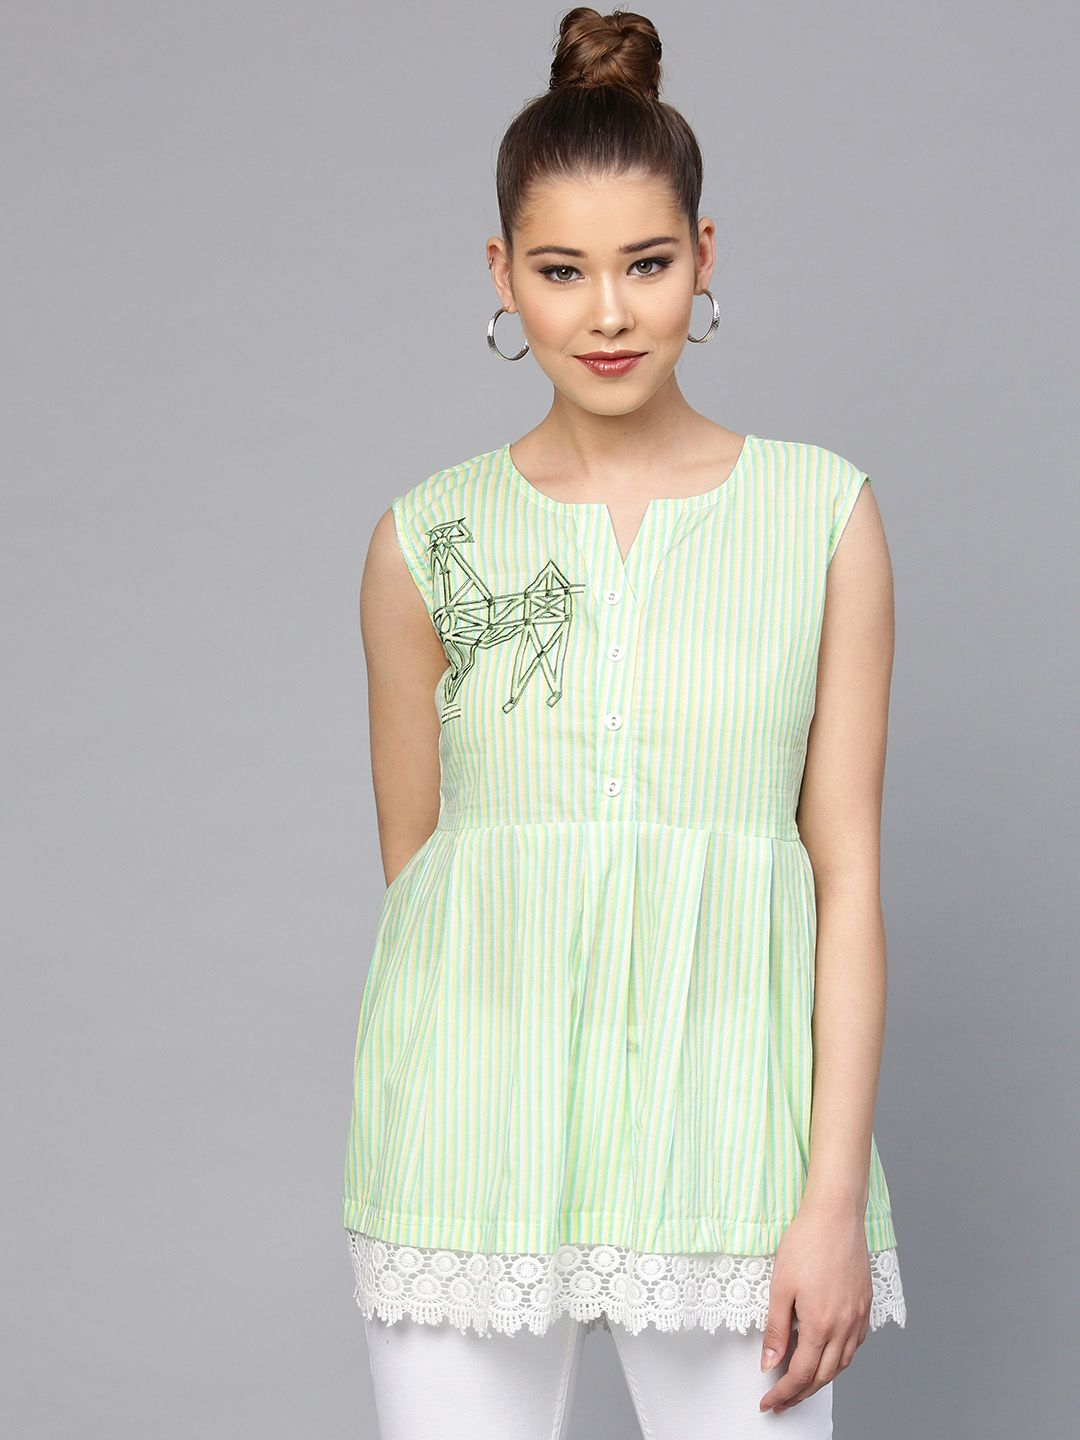 Yufta Green & White Striped Tunic